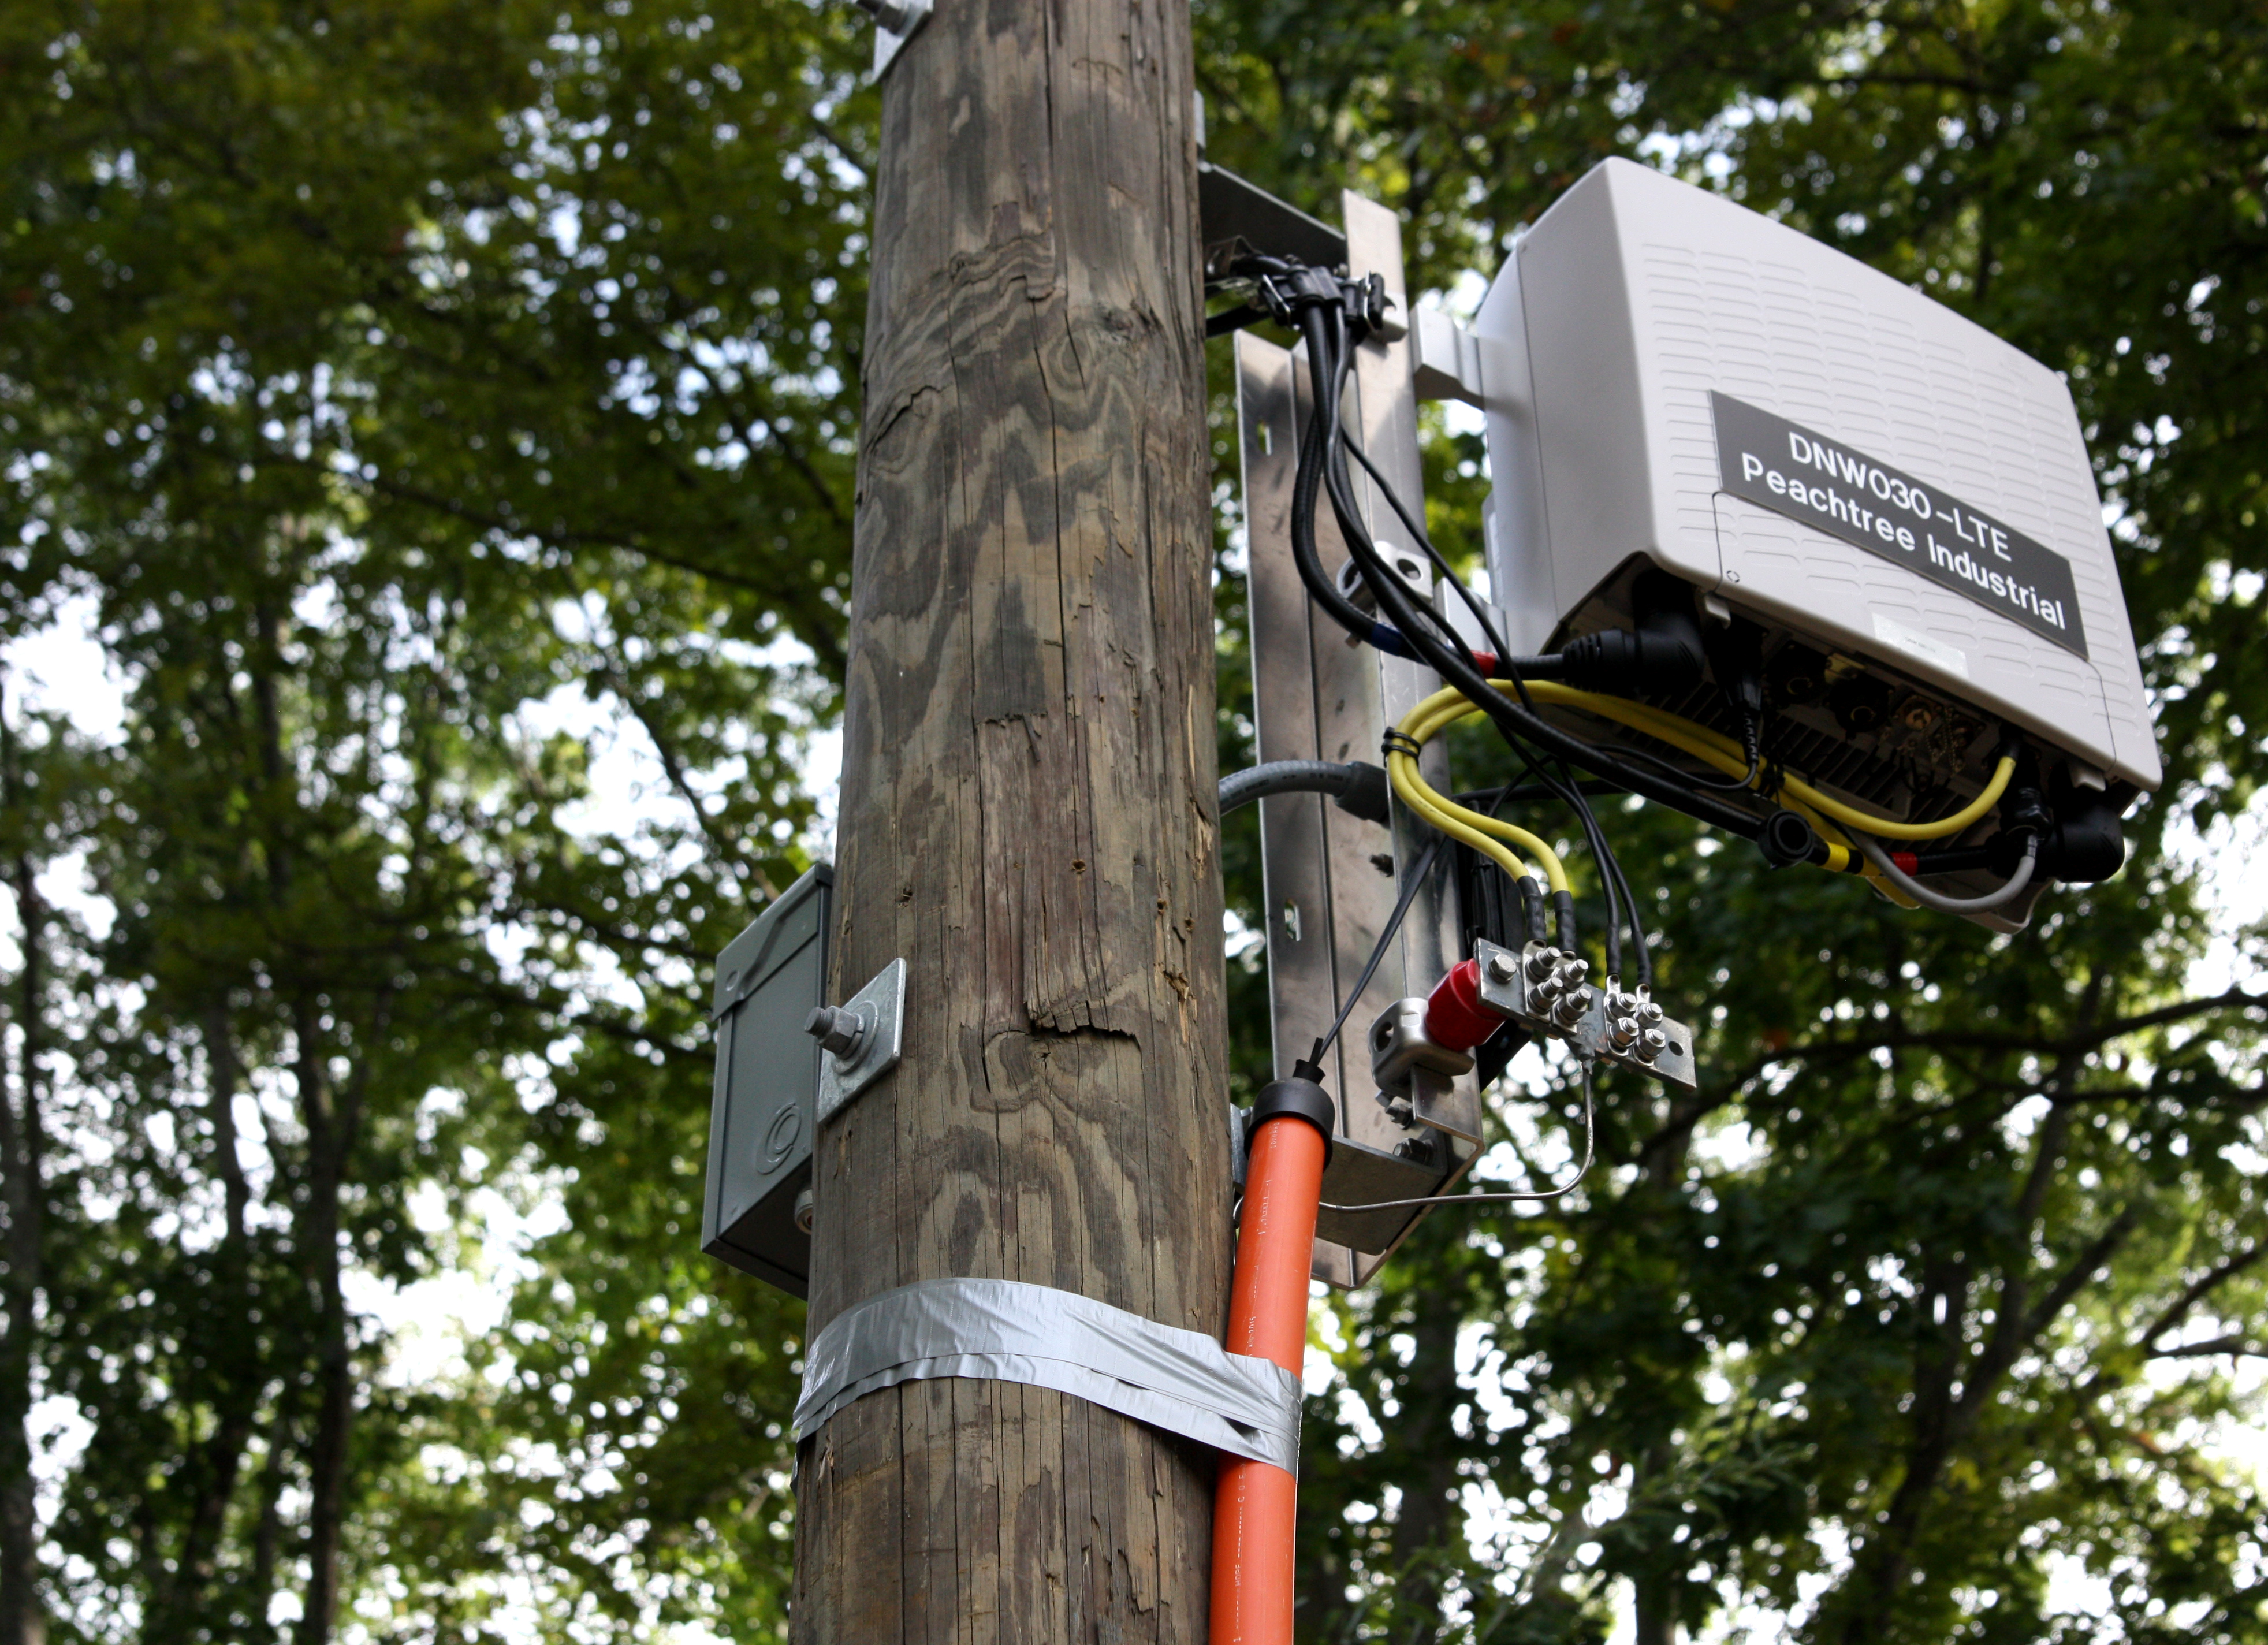 Dunwoody City Council questions ability to regulate small cell technology